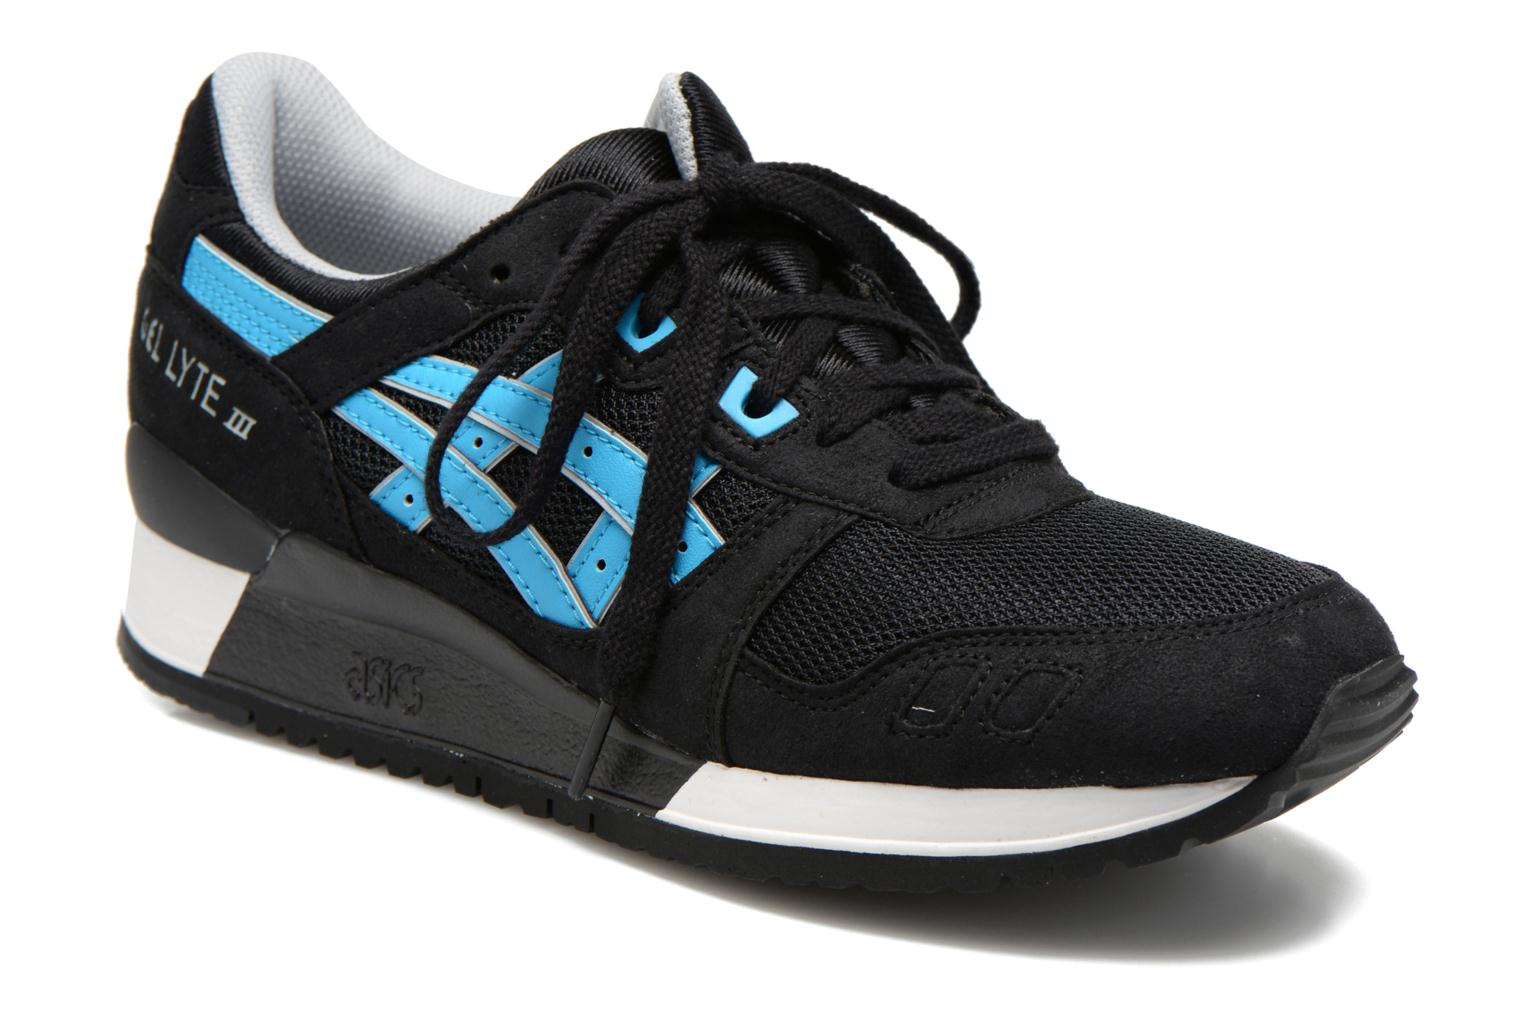 Gel-lyte III Black/Atomic Blue